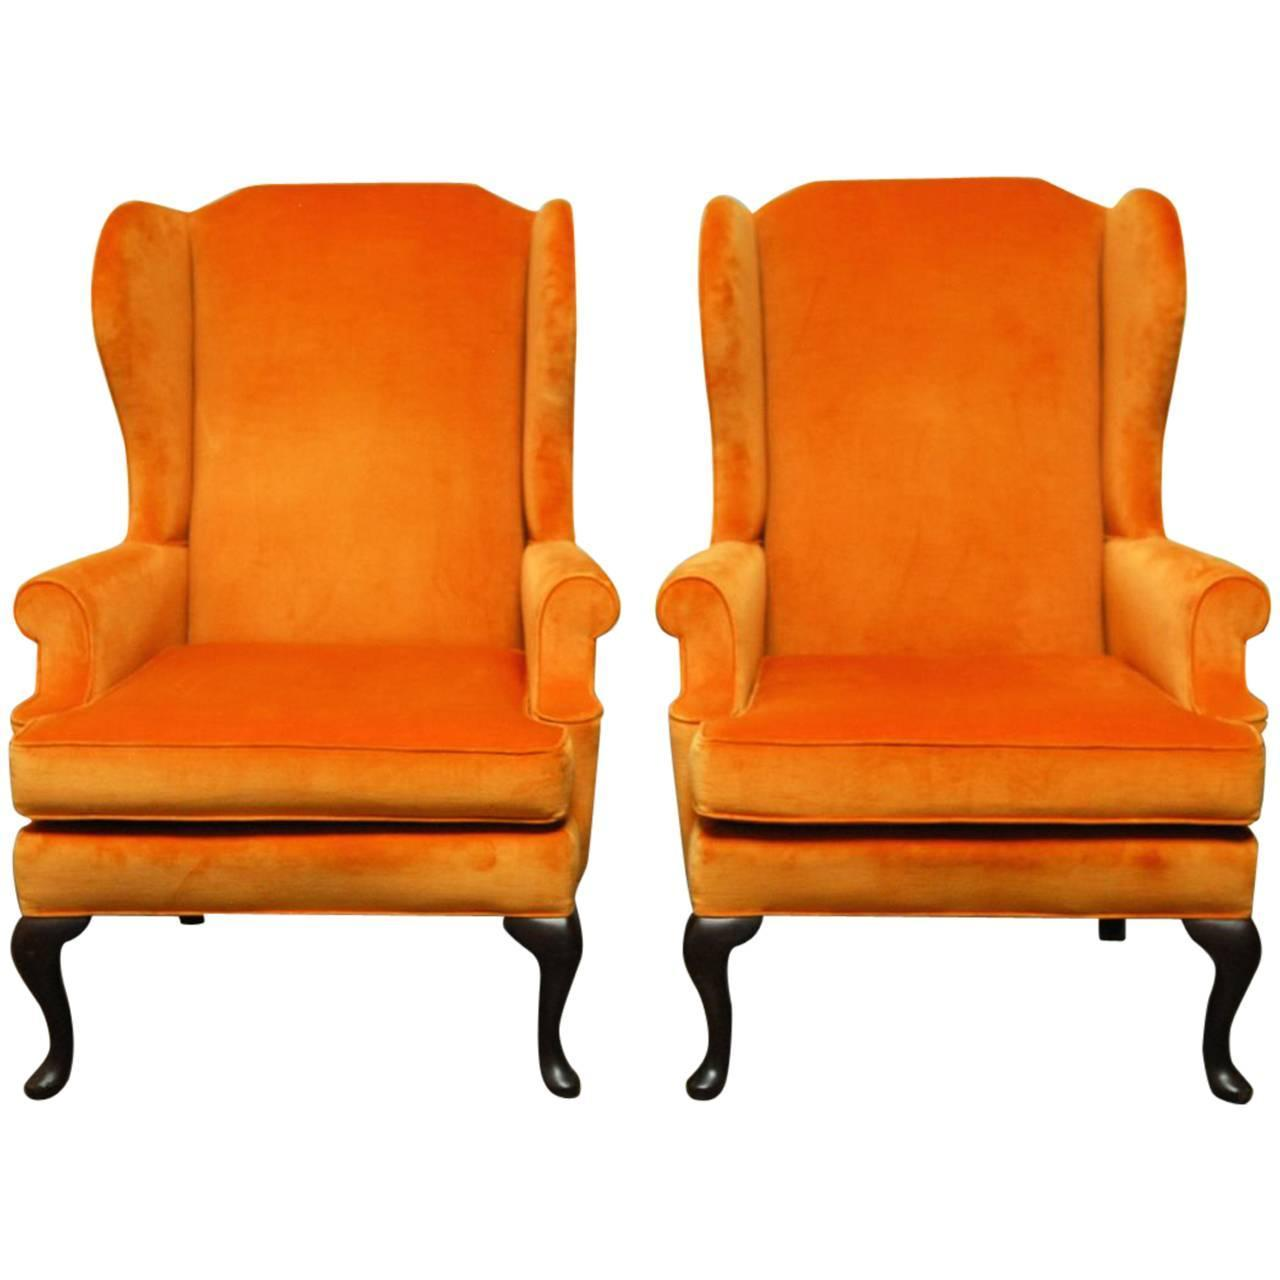 Pair Of Queen Anne Style Orange Crush Velvet Wing Chairs At 1stdibs